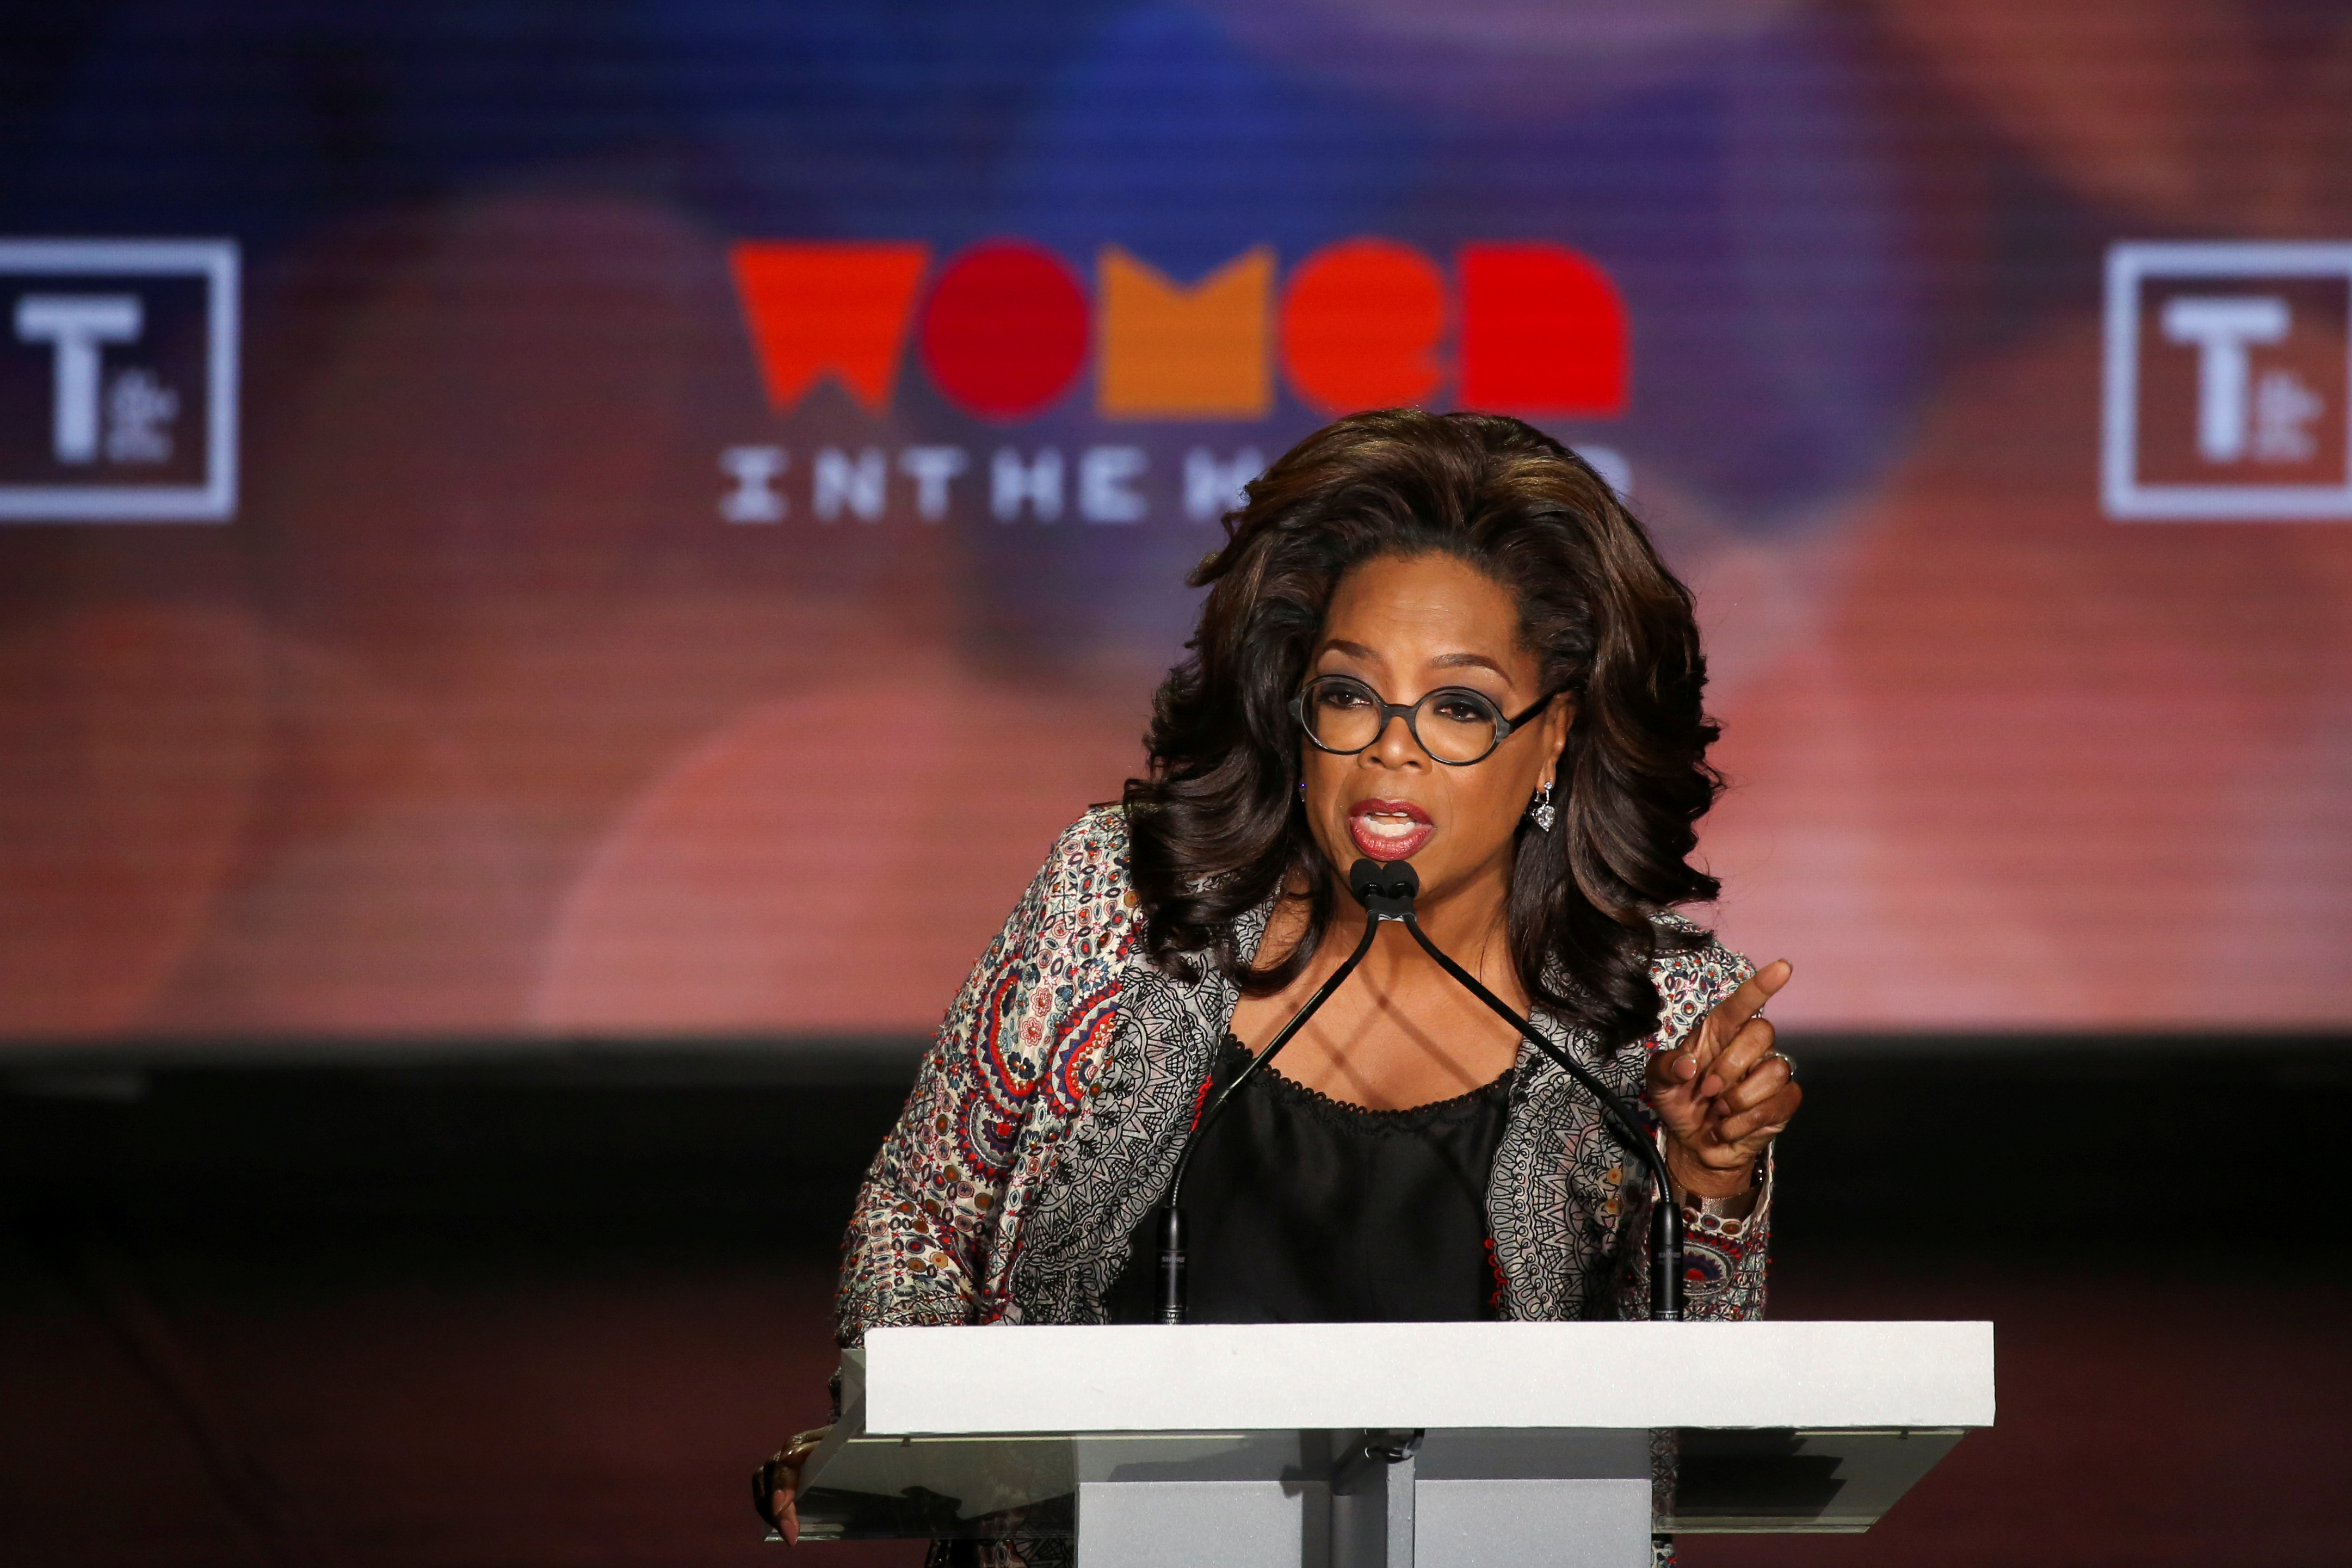 Oprah Winfrey takes part in the Women In The World Summit in New York City, U.S., April 10, 2019. REUTERS/Caitlin Ochs/File Photo